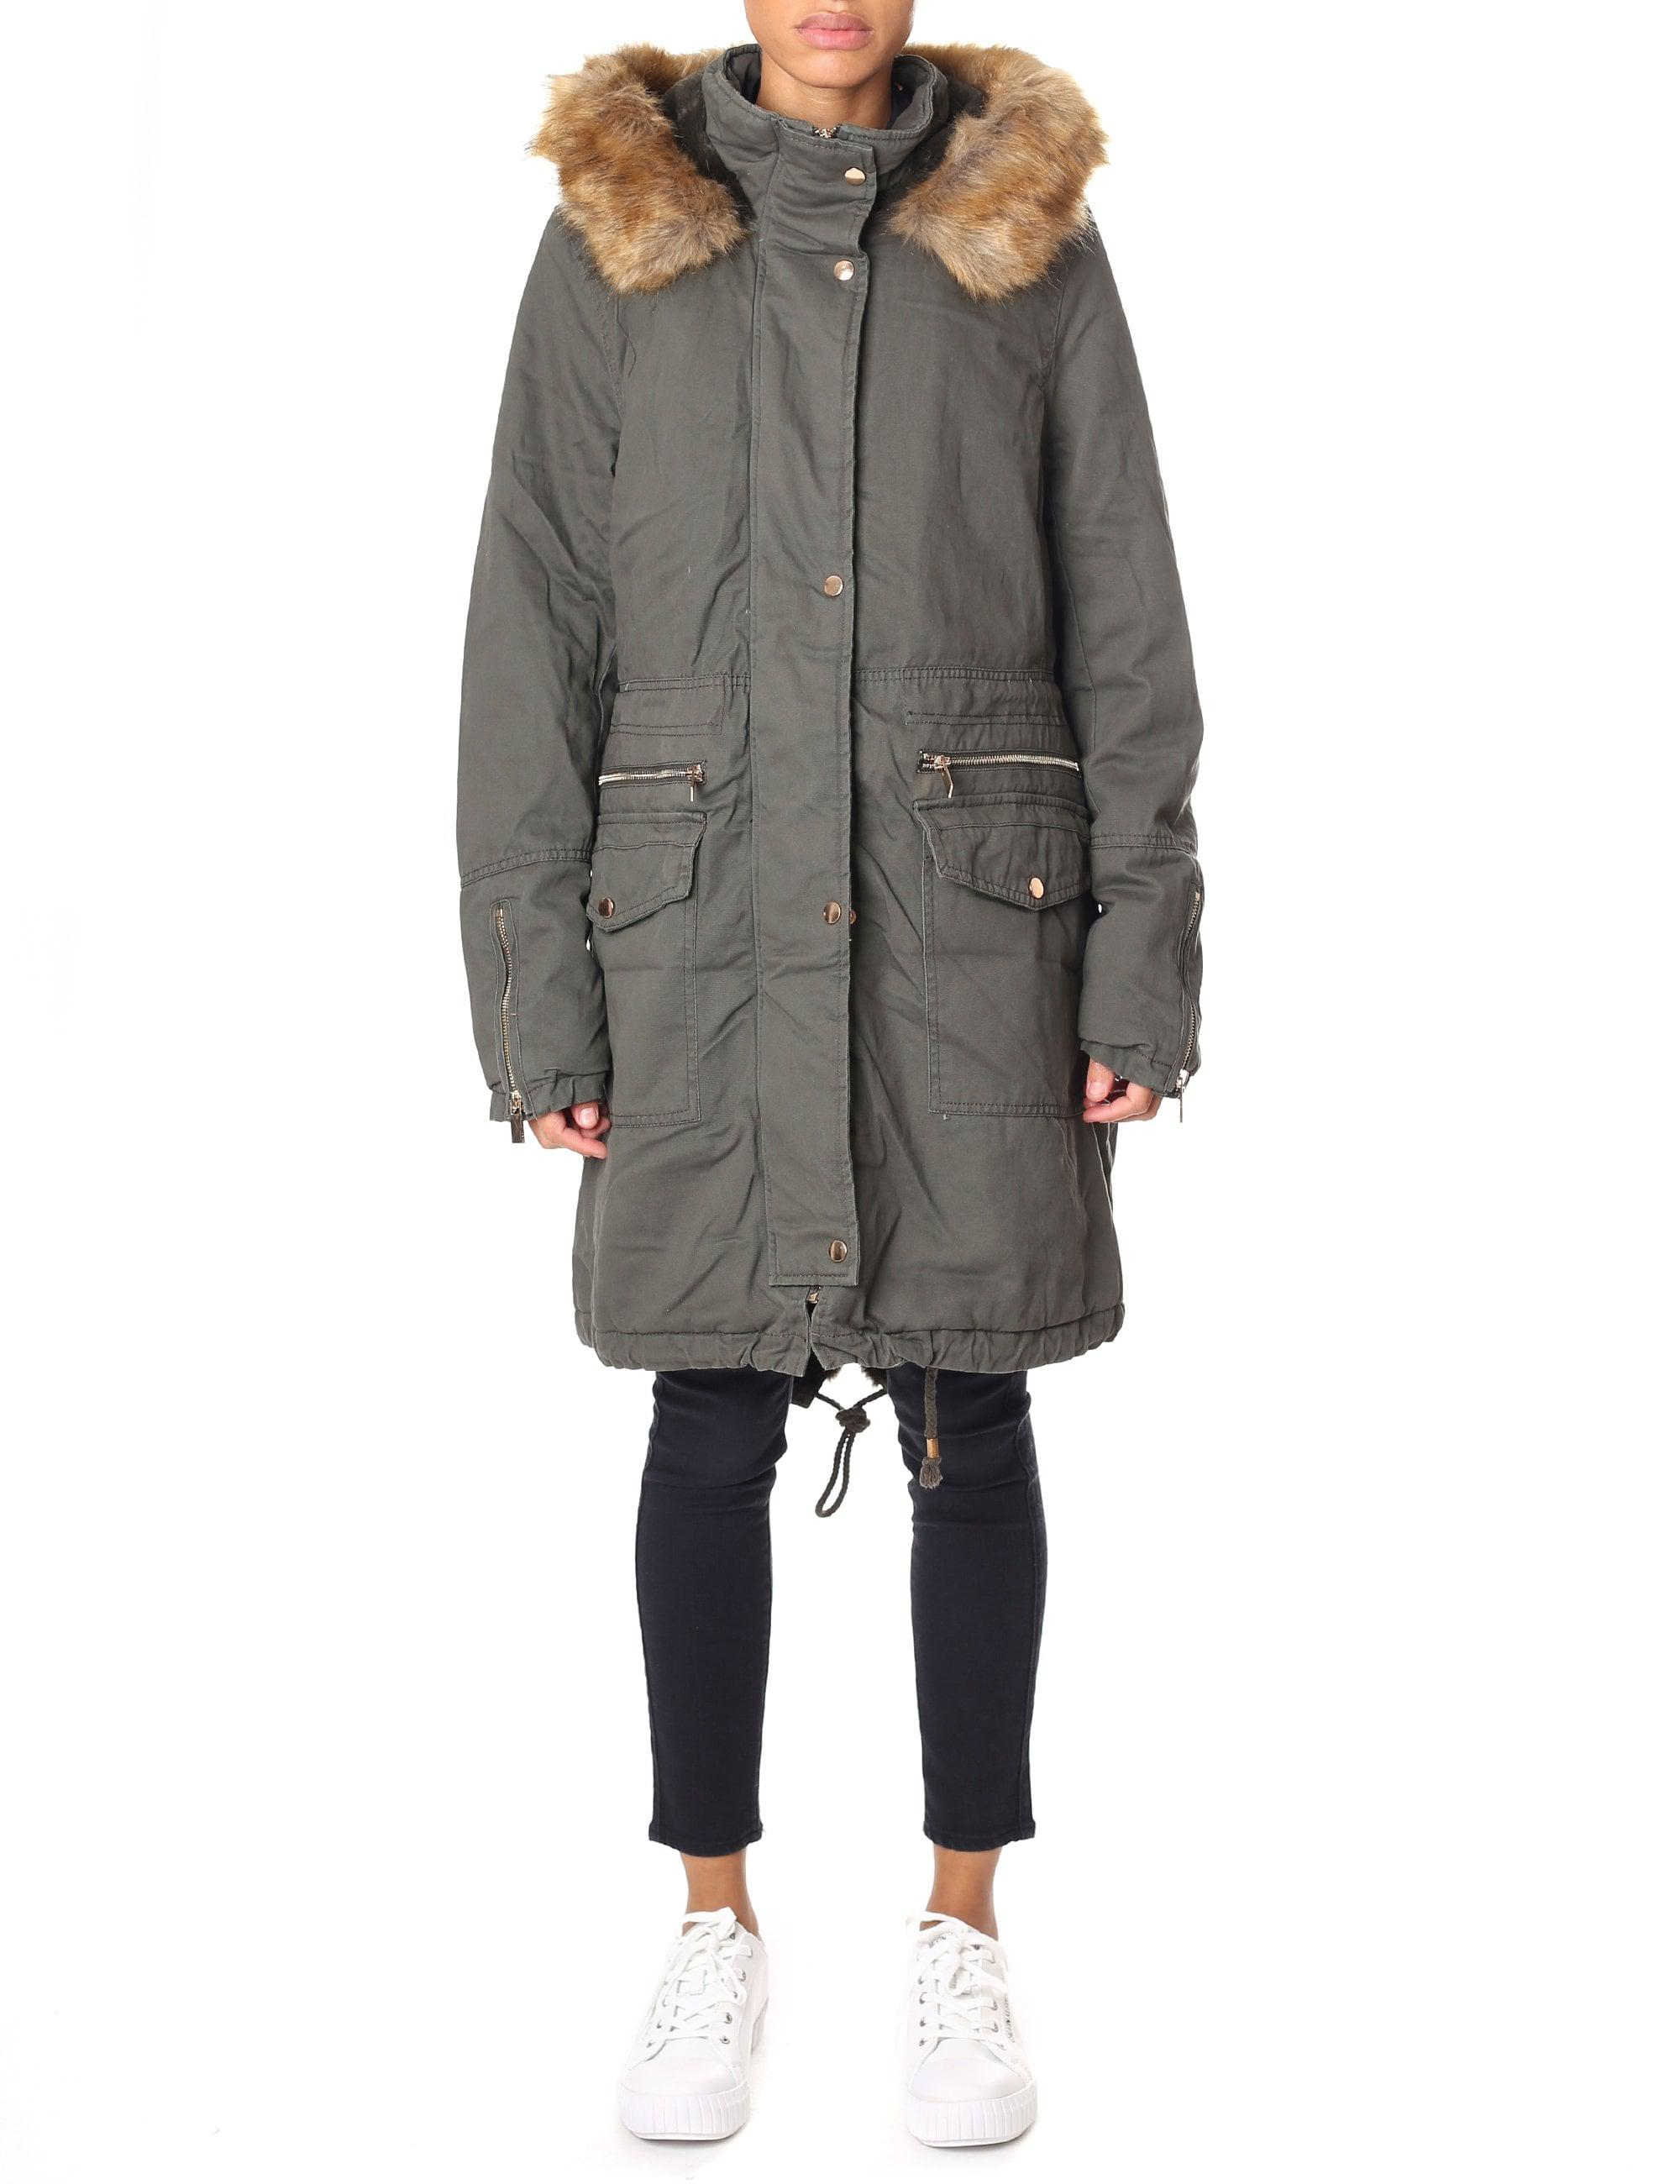 a65db19f68d Rino   Pelle Women s Leevy Parka With Fur Hood Olive in Green - Lyst